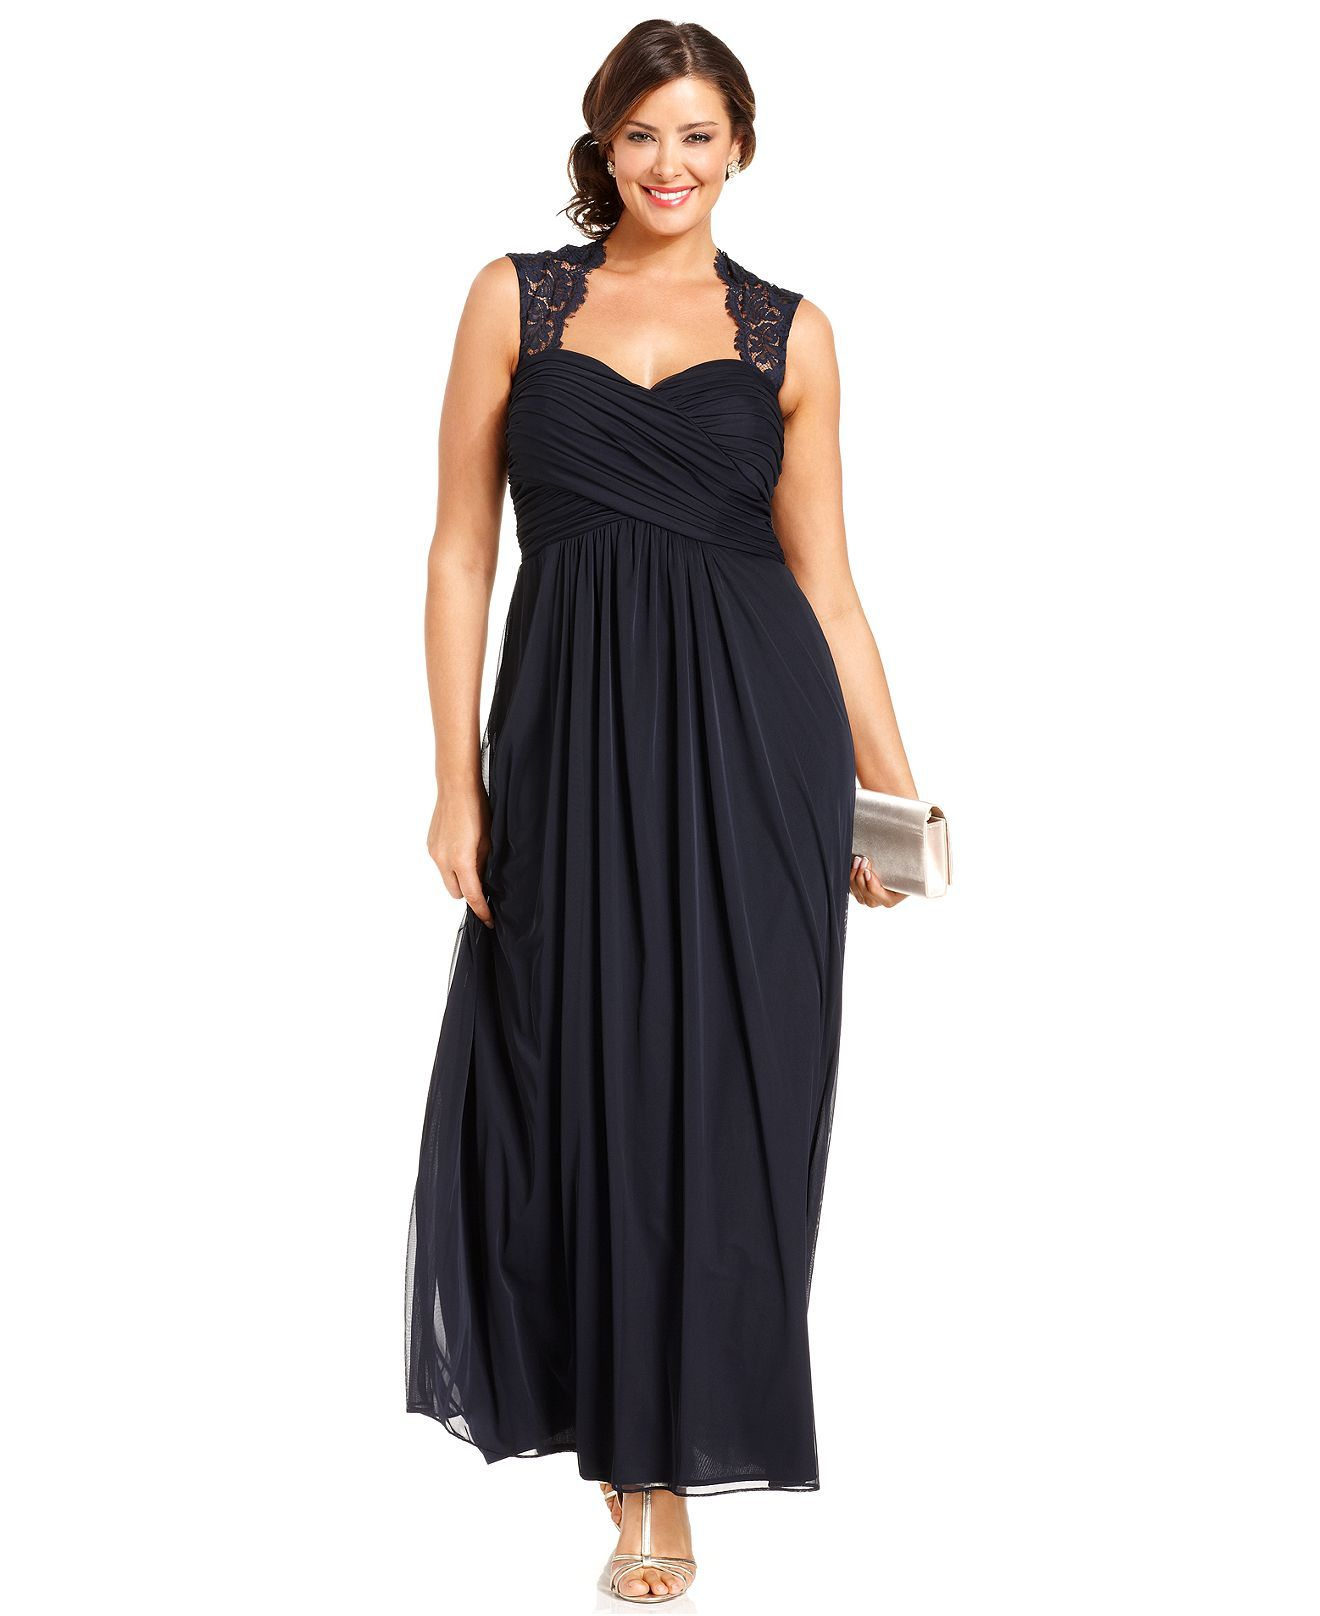 Xscape plus size dress sleeveless lace back empire waist plus id love this for a bridesmaid dress xscape plus size dress sleeveless lace back empire waist plus size dresses plus sizes macys ombrellifo Images